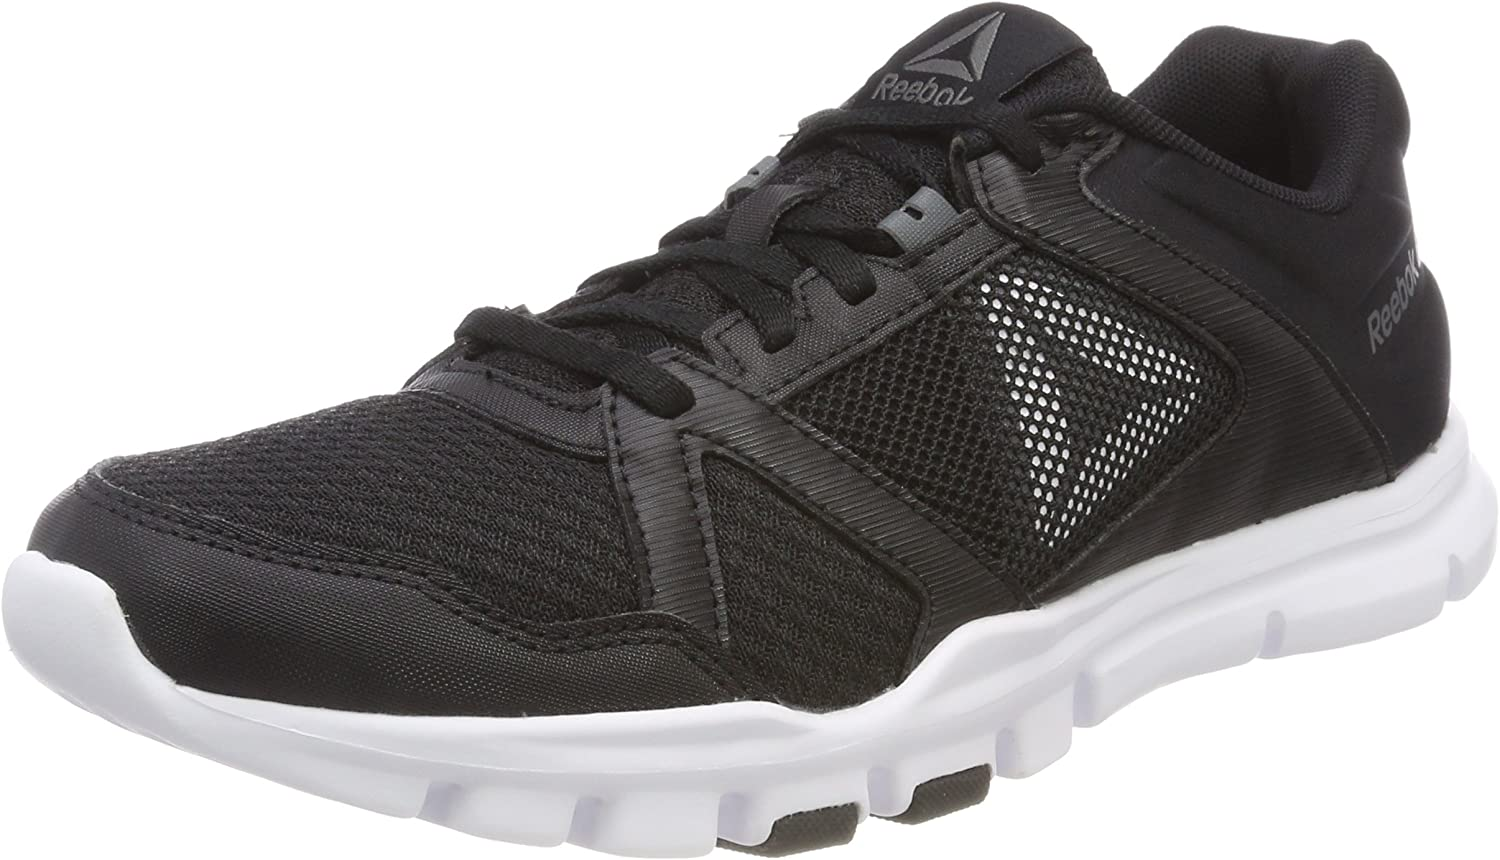 Reebok Men's Bs9882 Fitness shoes